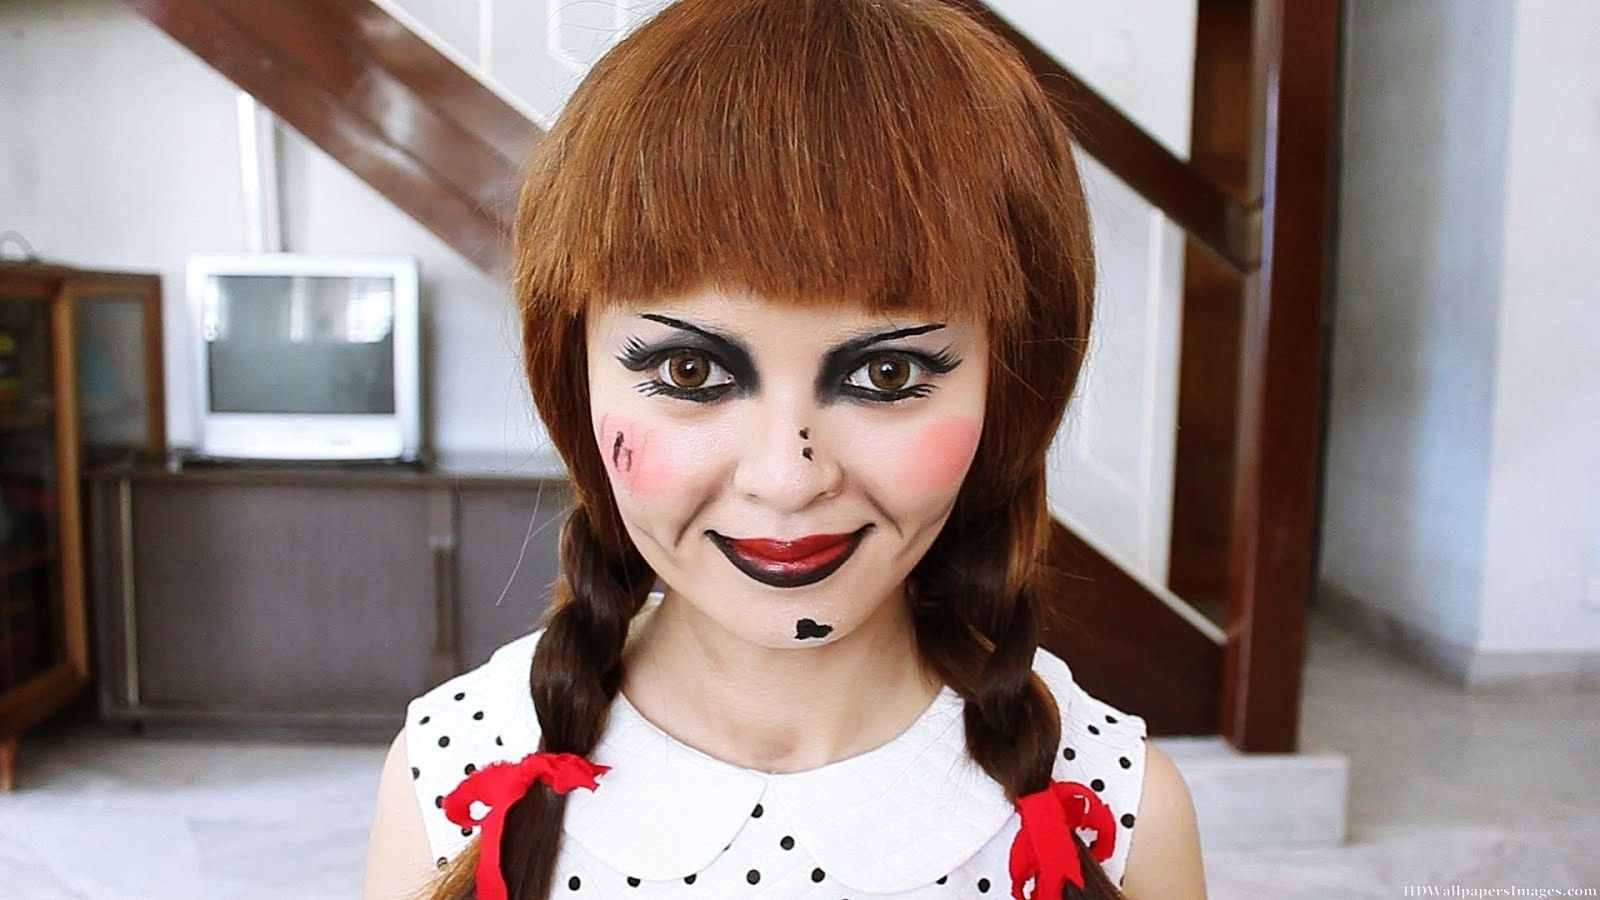 Annabelle doll google search happy halloween pinterest here is the annabelle halloween makeup tutorial to make you the annabelle doll in this upcoming halloween party discover more halloween makeup tutorial baditri Image collections